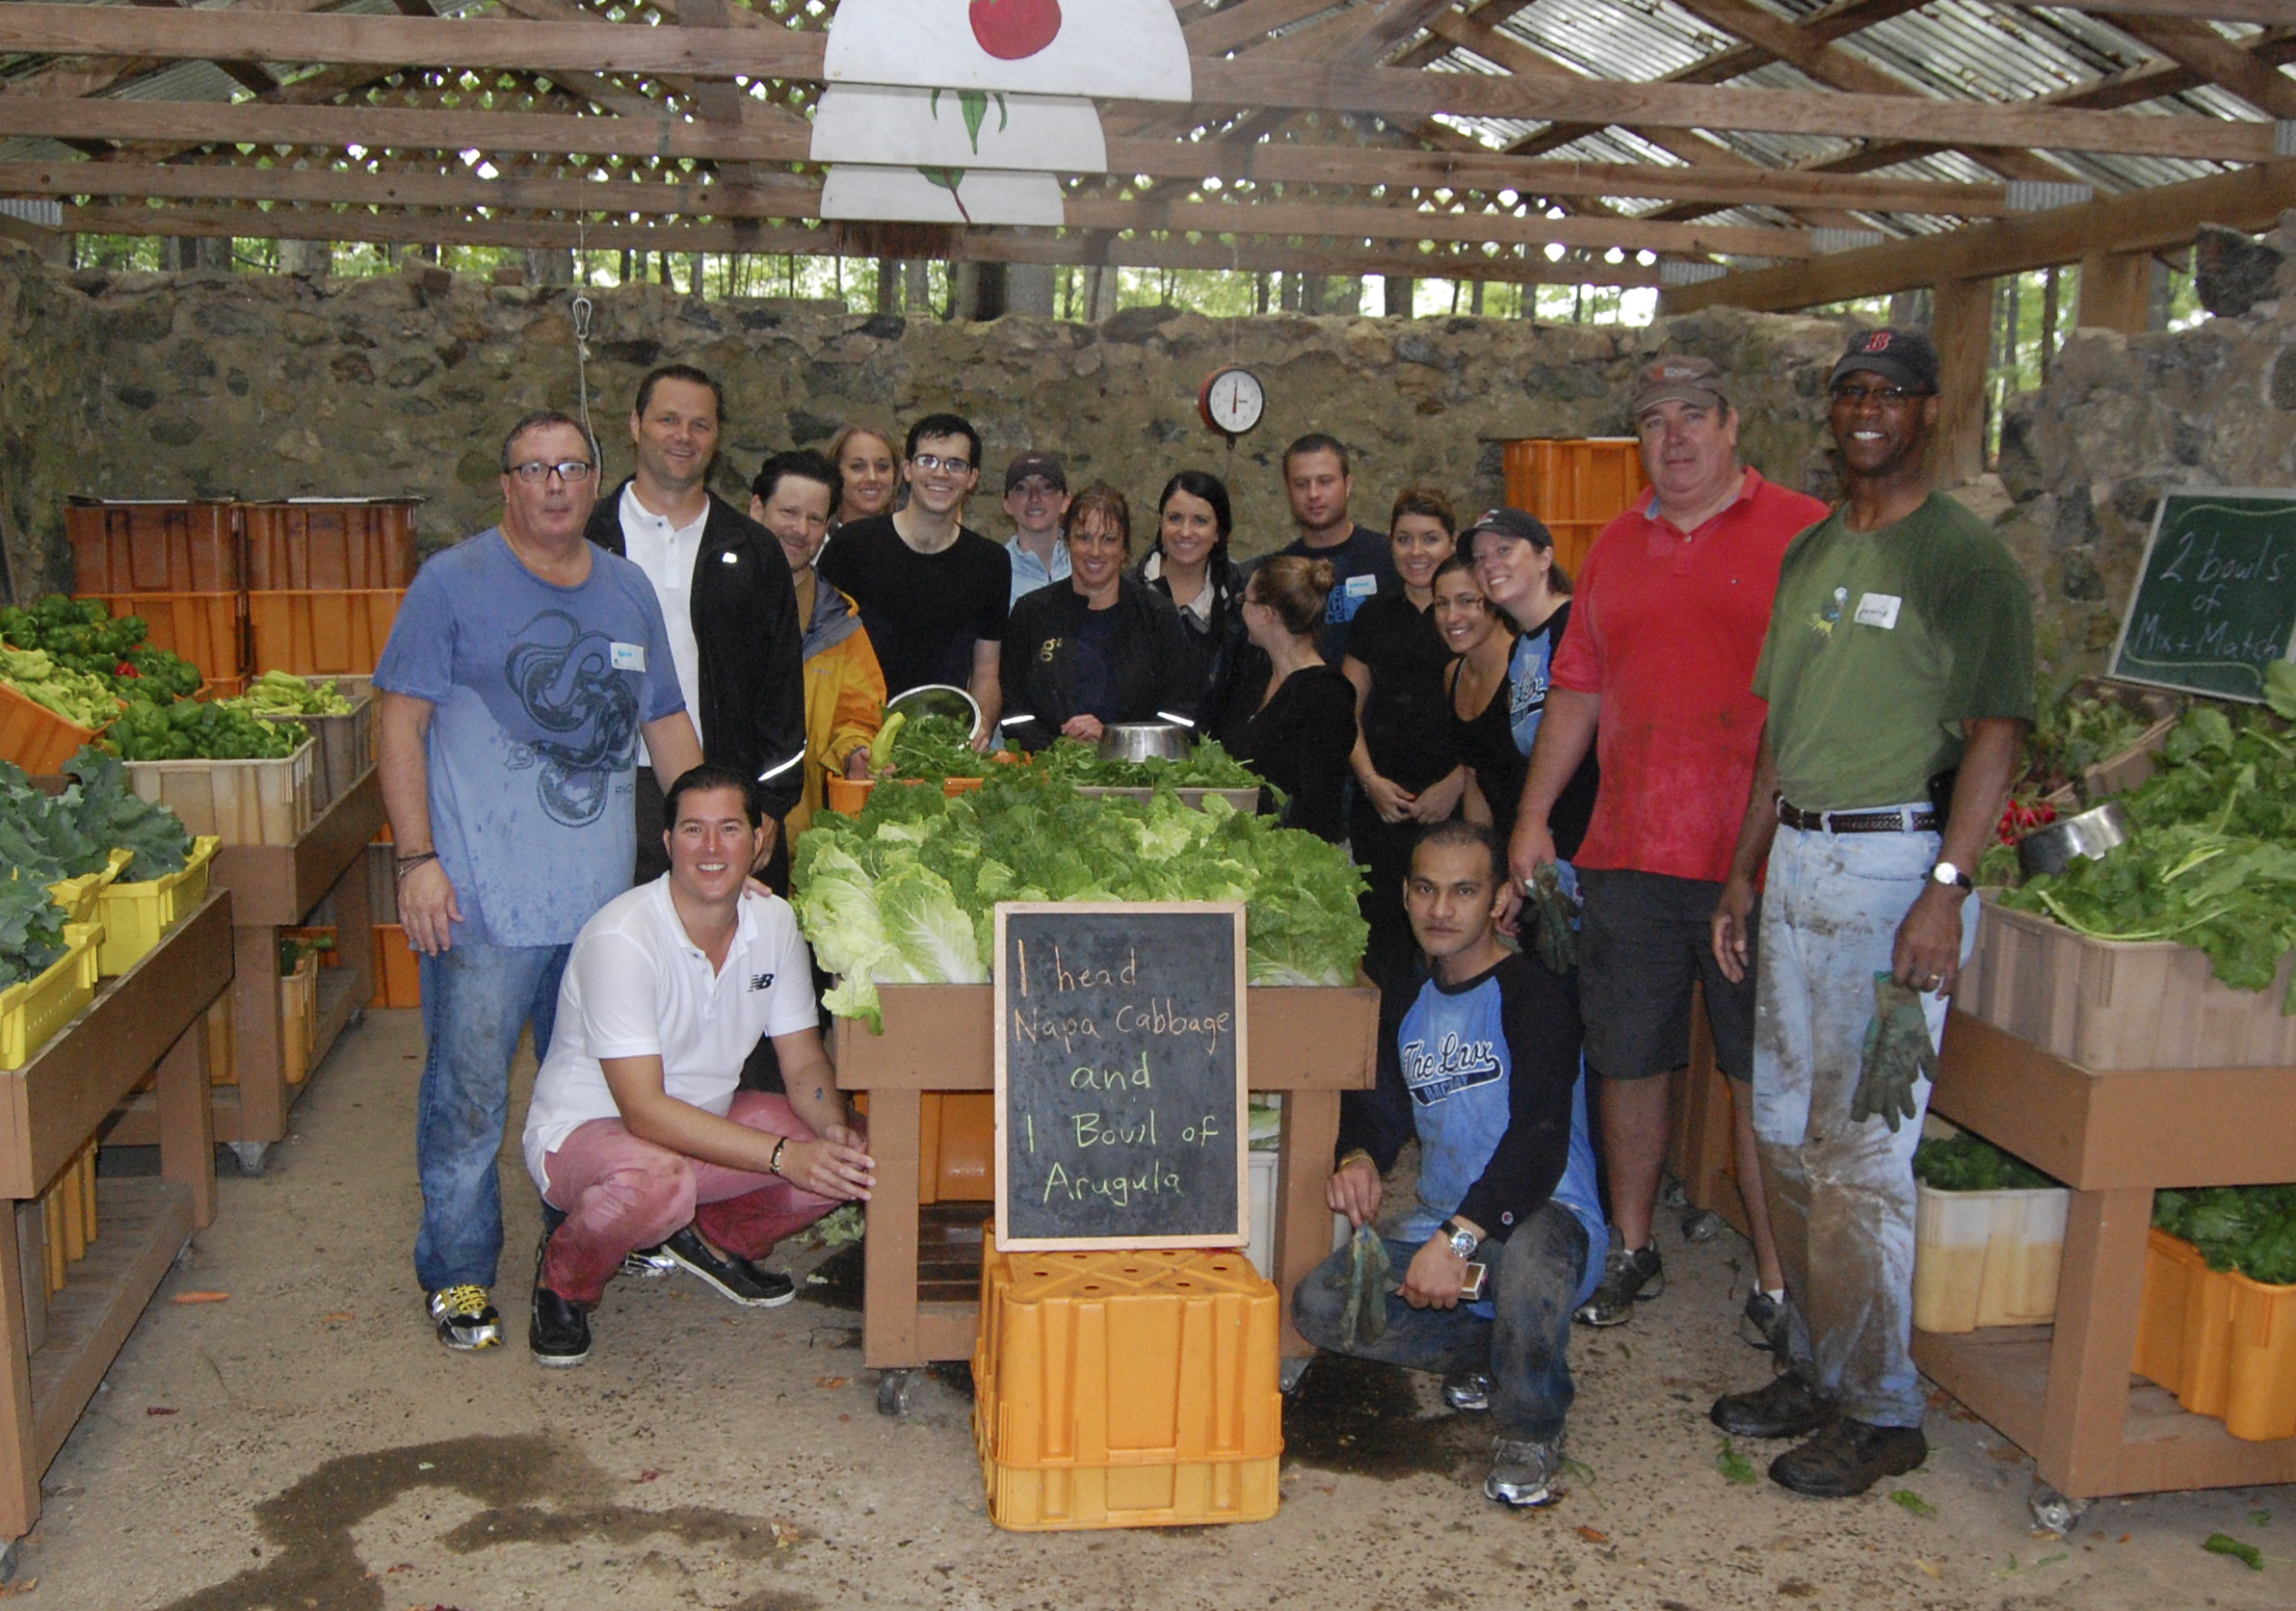 The Lenox Hotel team at The Food Project in Lincoln, MA